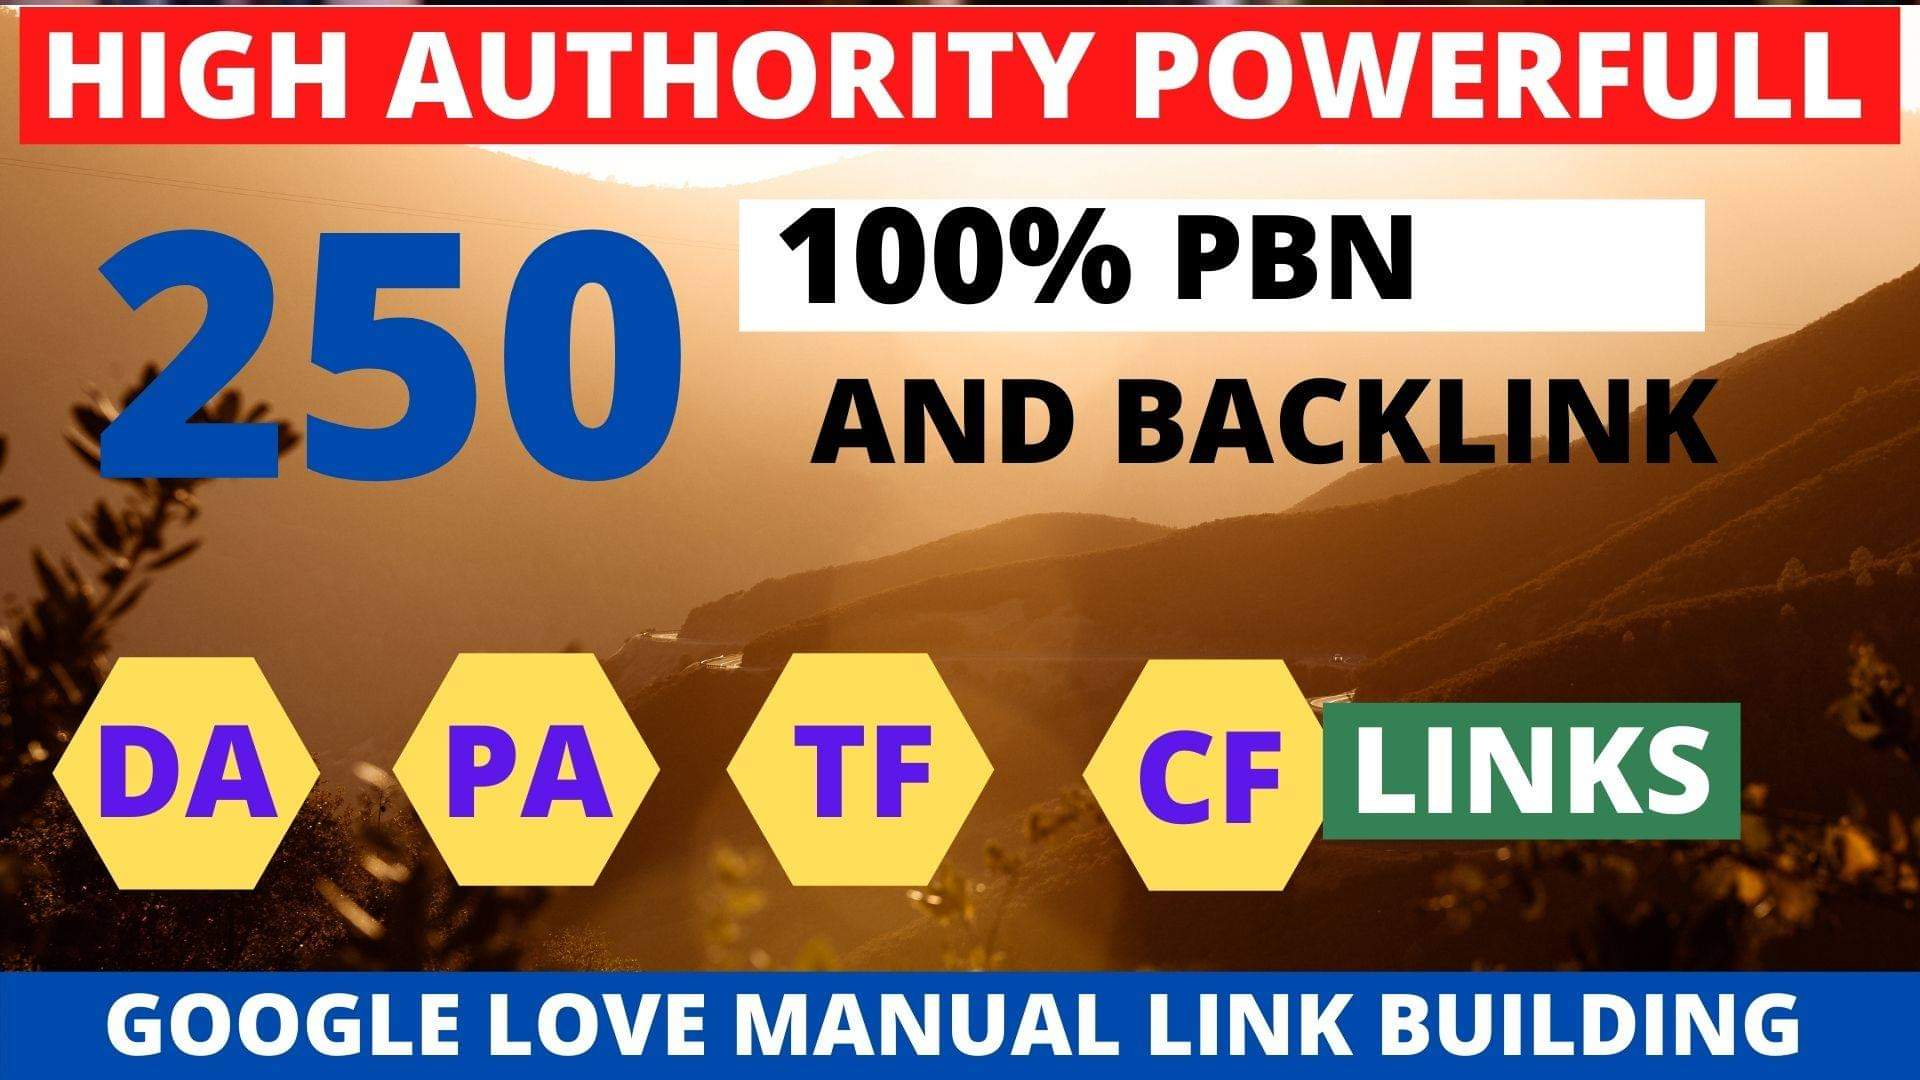 Get powerfull 250+ pbn backlink with high DA/PA/TF/CF on your homepage with unique website